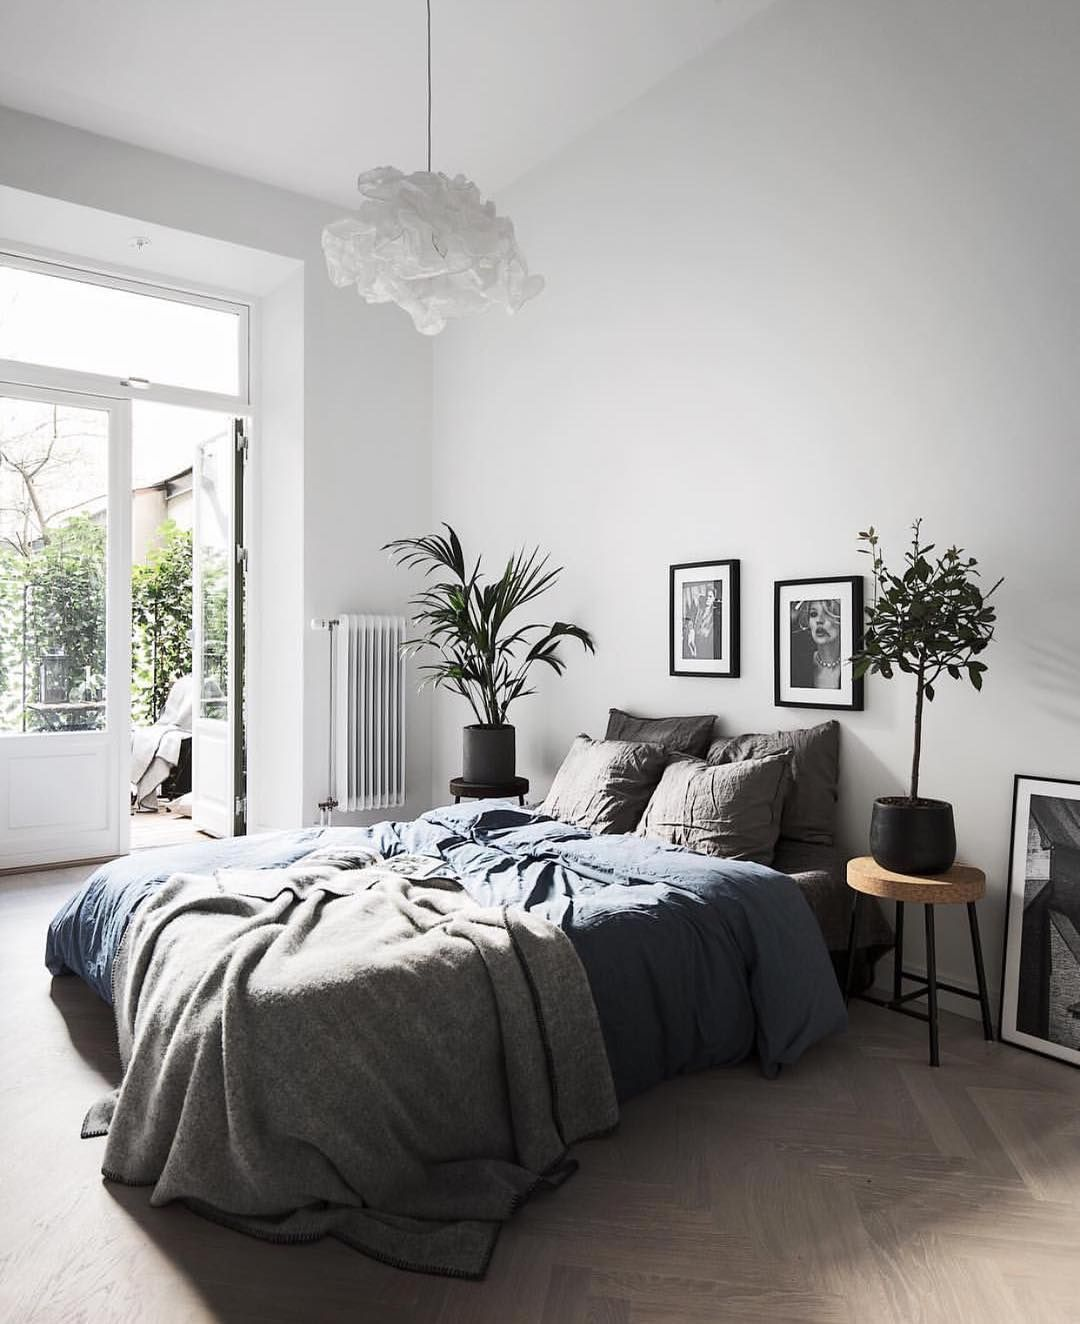 Sunday bedroom inspo don 39 t mind if i do styling by for Interior design images for bedrooms